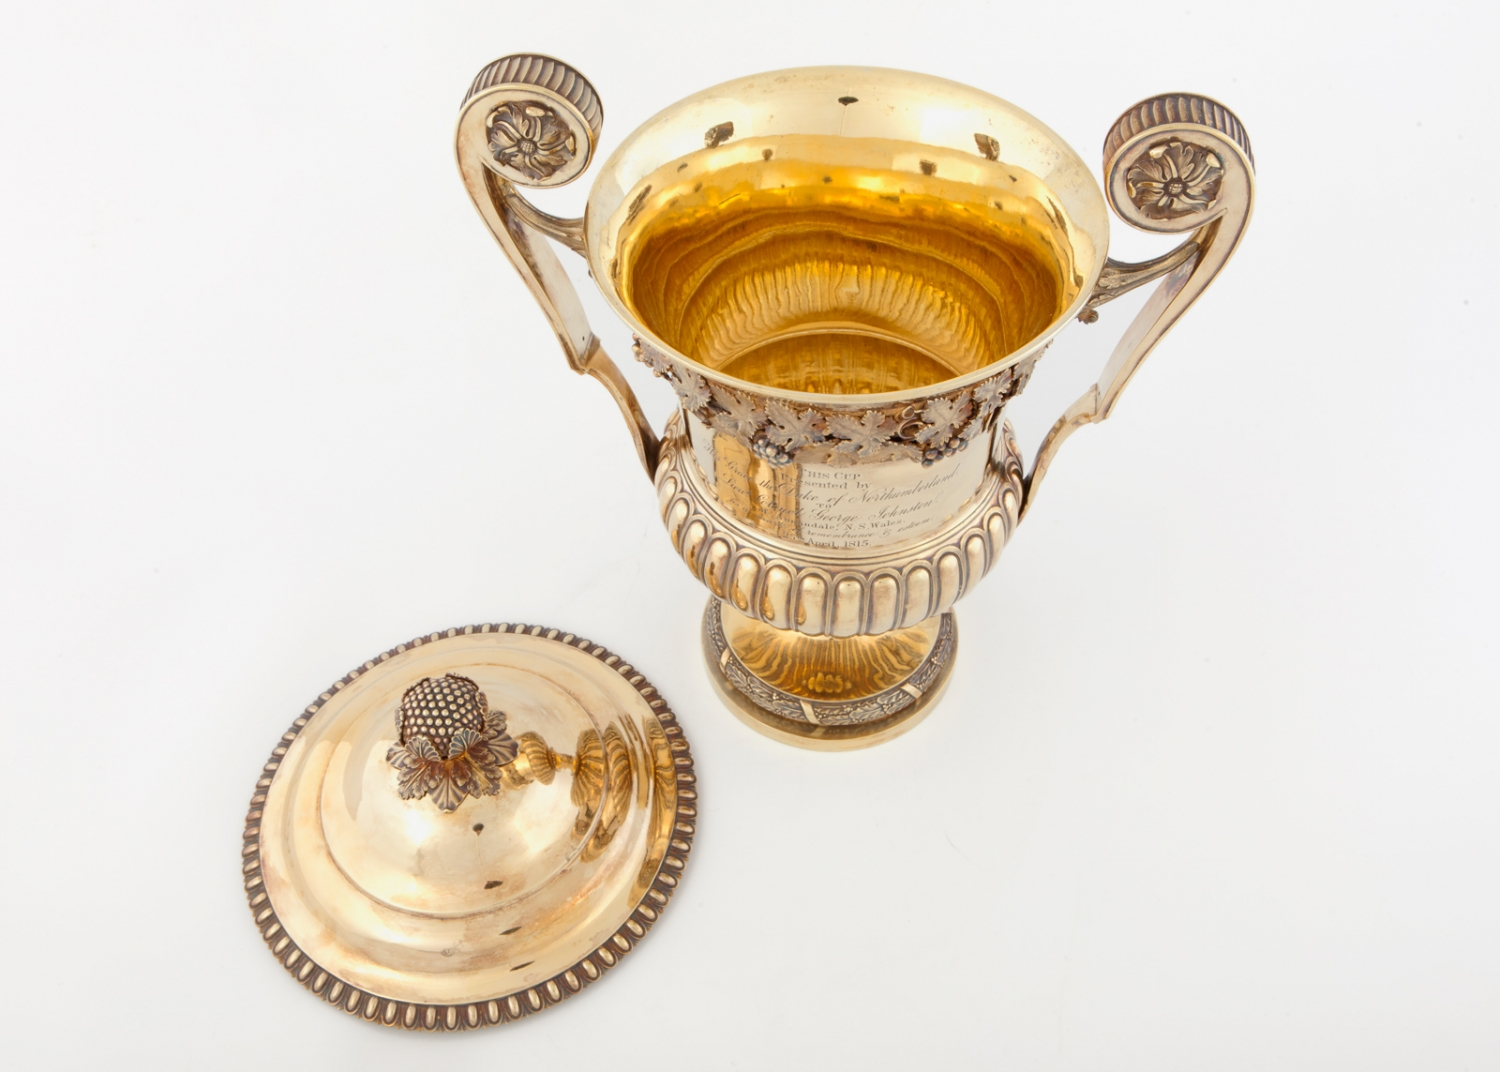 Urn shaped silver gilt cup presented to Lieutenant Colonel George Johnston, 1814